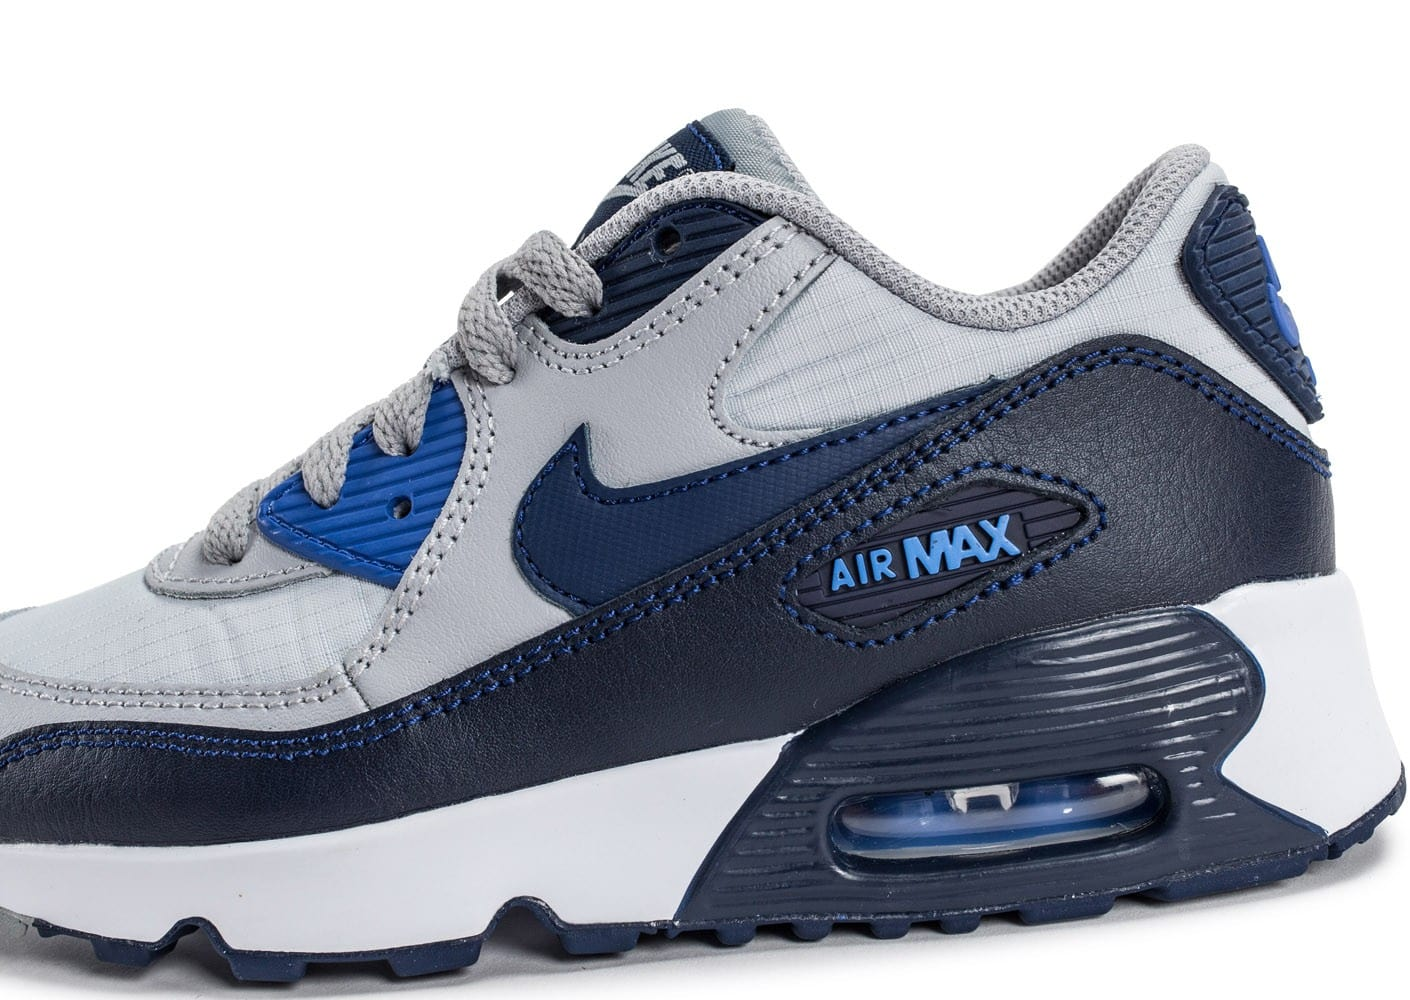 new design sale retailer outlet on sale Nike Air Max 90 Mesh Enfant grise et bleue - Chaussures Enfant ...